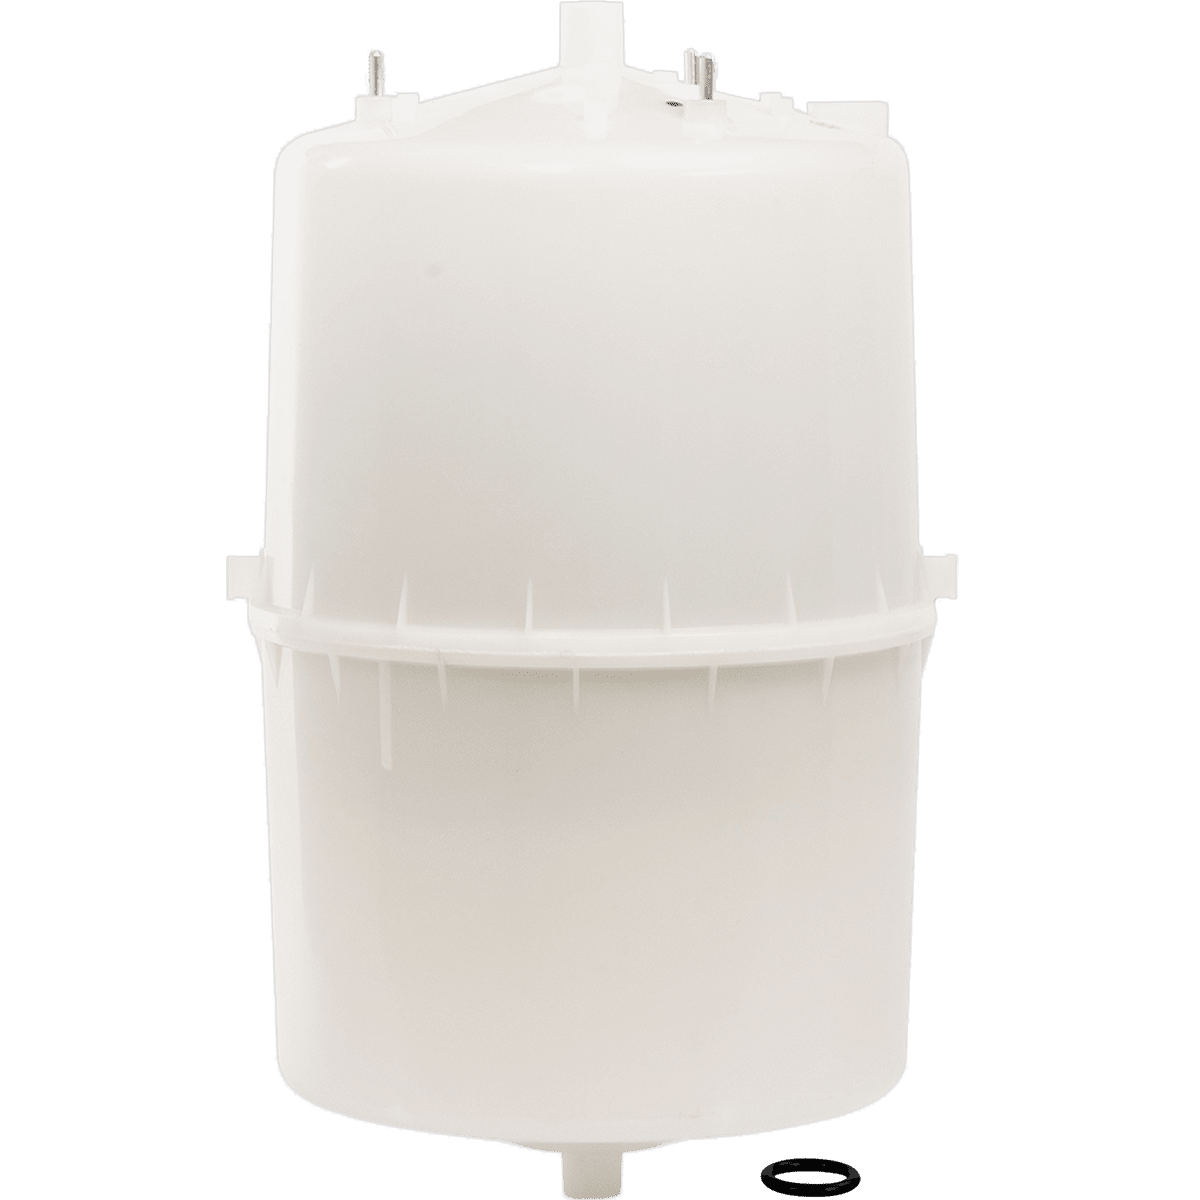 Aprilaire 411aac Steam Humidifier Cylinder (fits Nortec® 411)